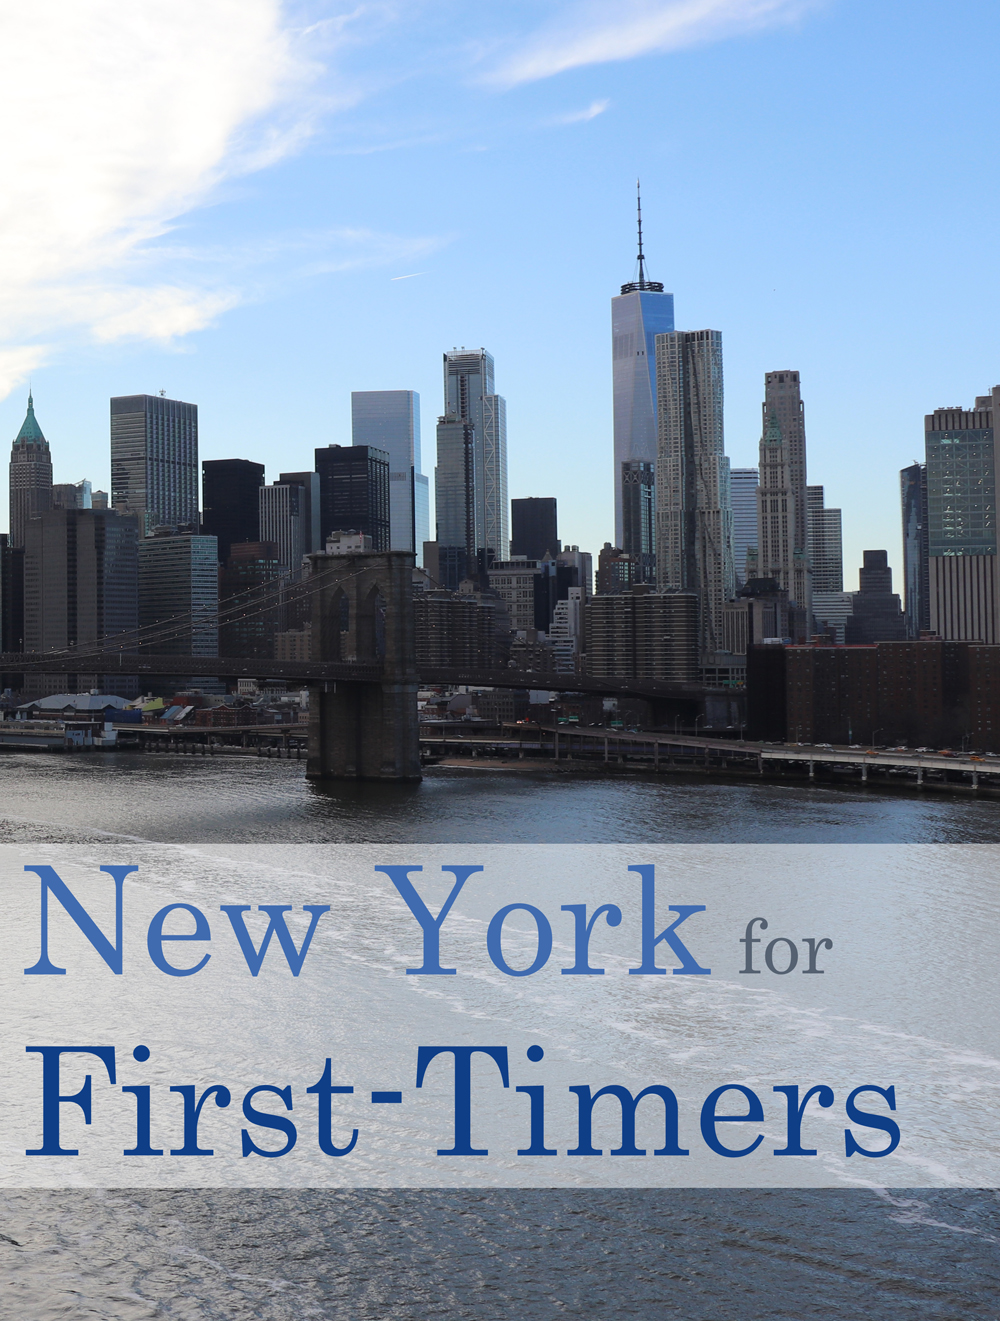 The Best of New York for First-Timers